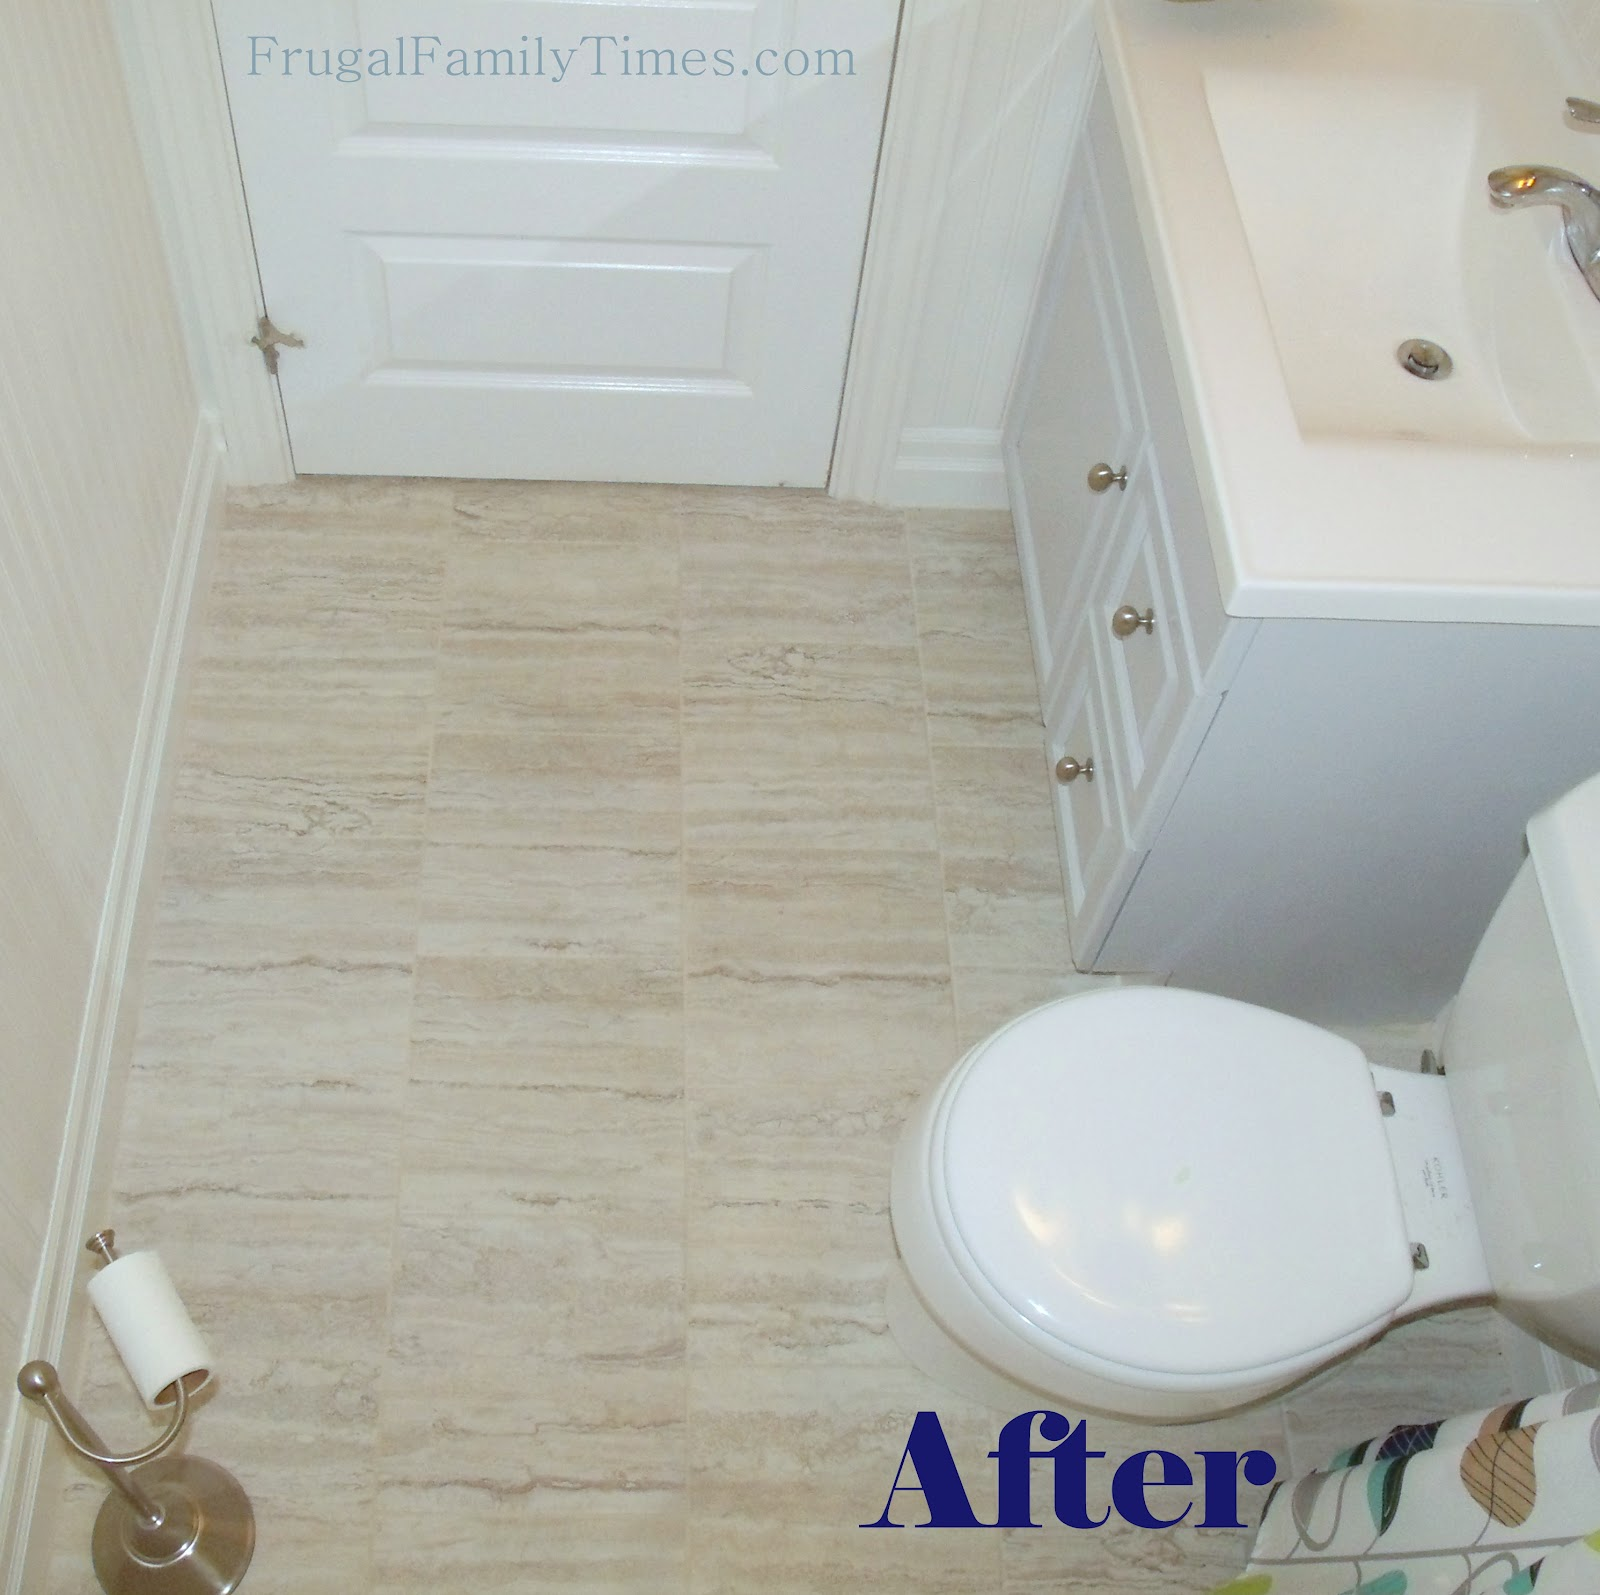 Vinyl Tiles For Kitchen Floor How To Install Peel And Stick Vinyl Tile That You Can Grout